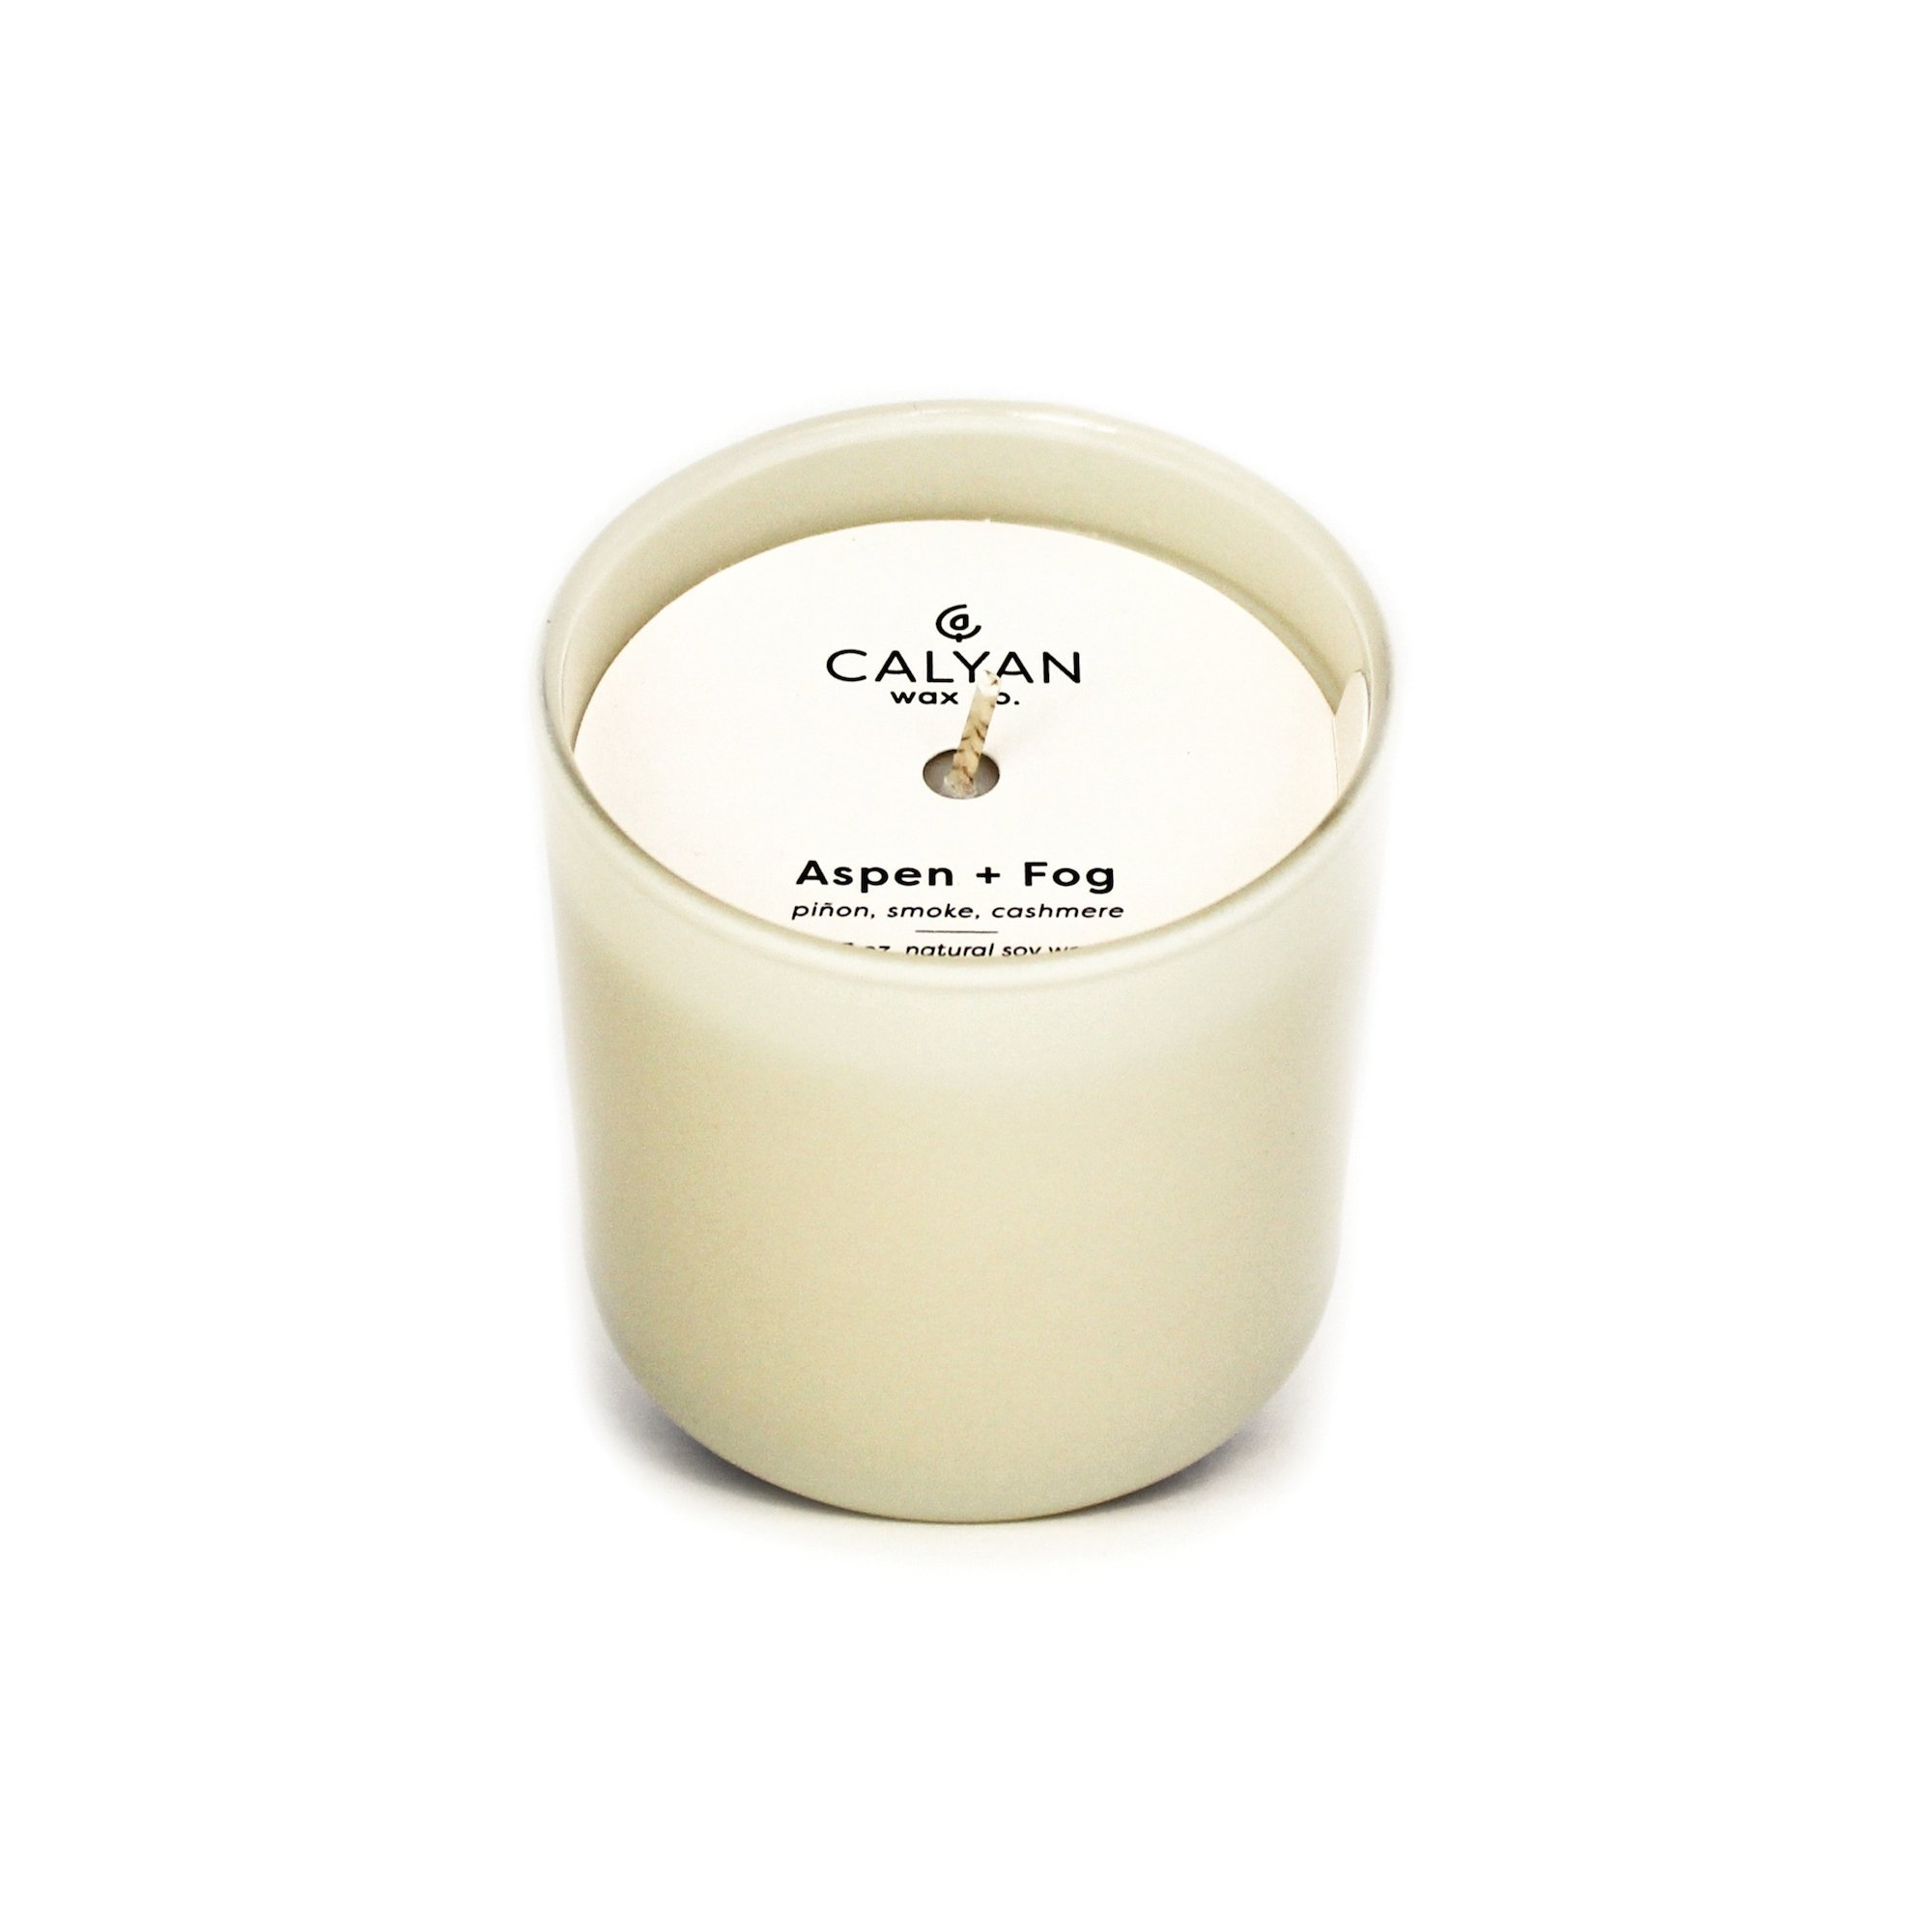 Aspen + Fog Dignity Series Soy Candle